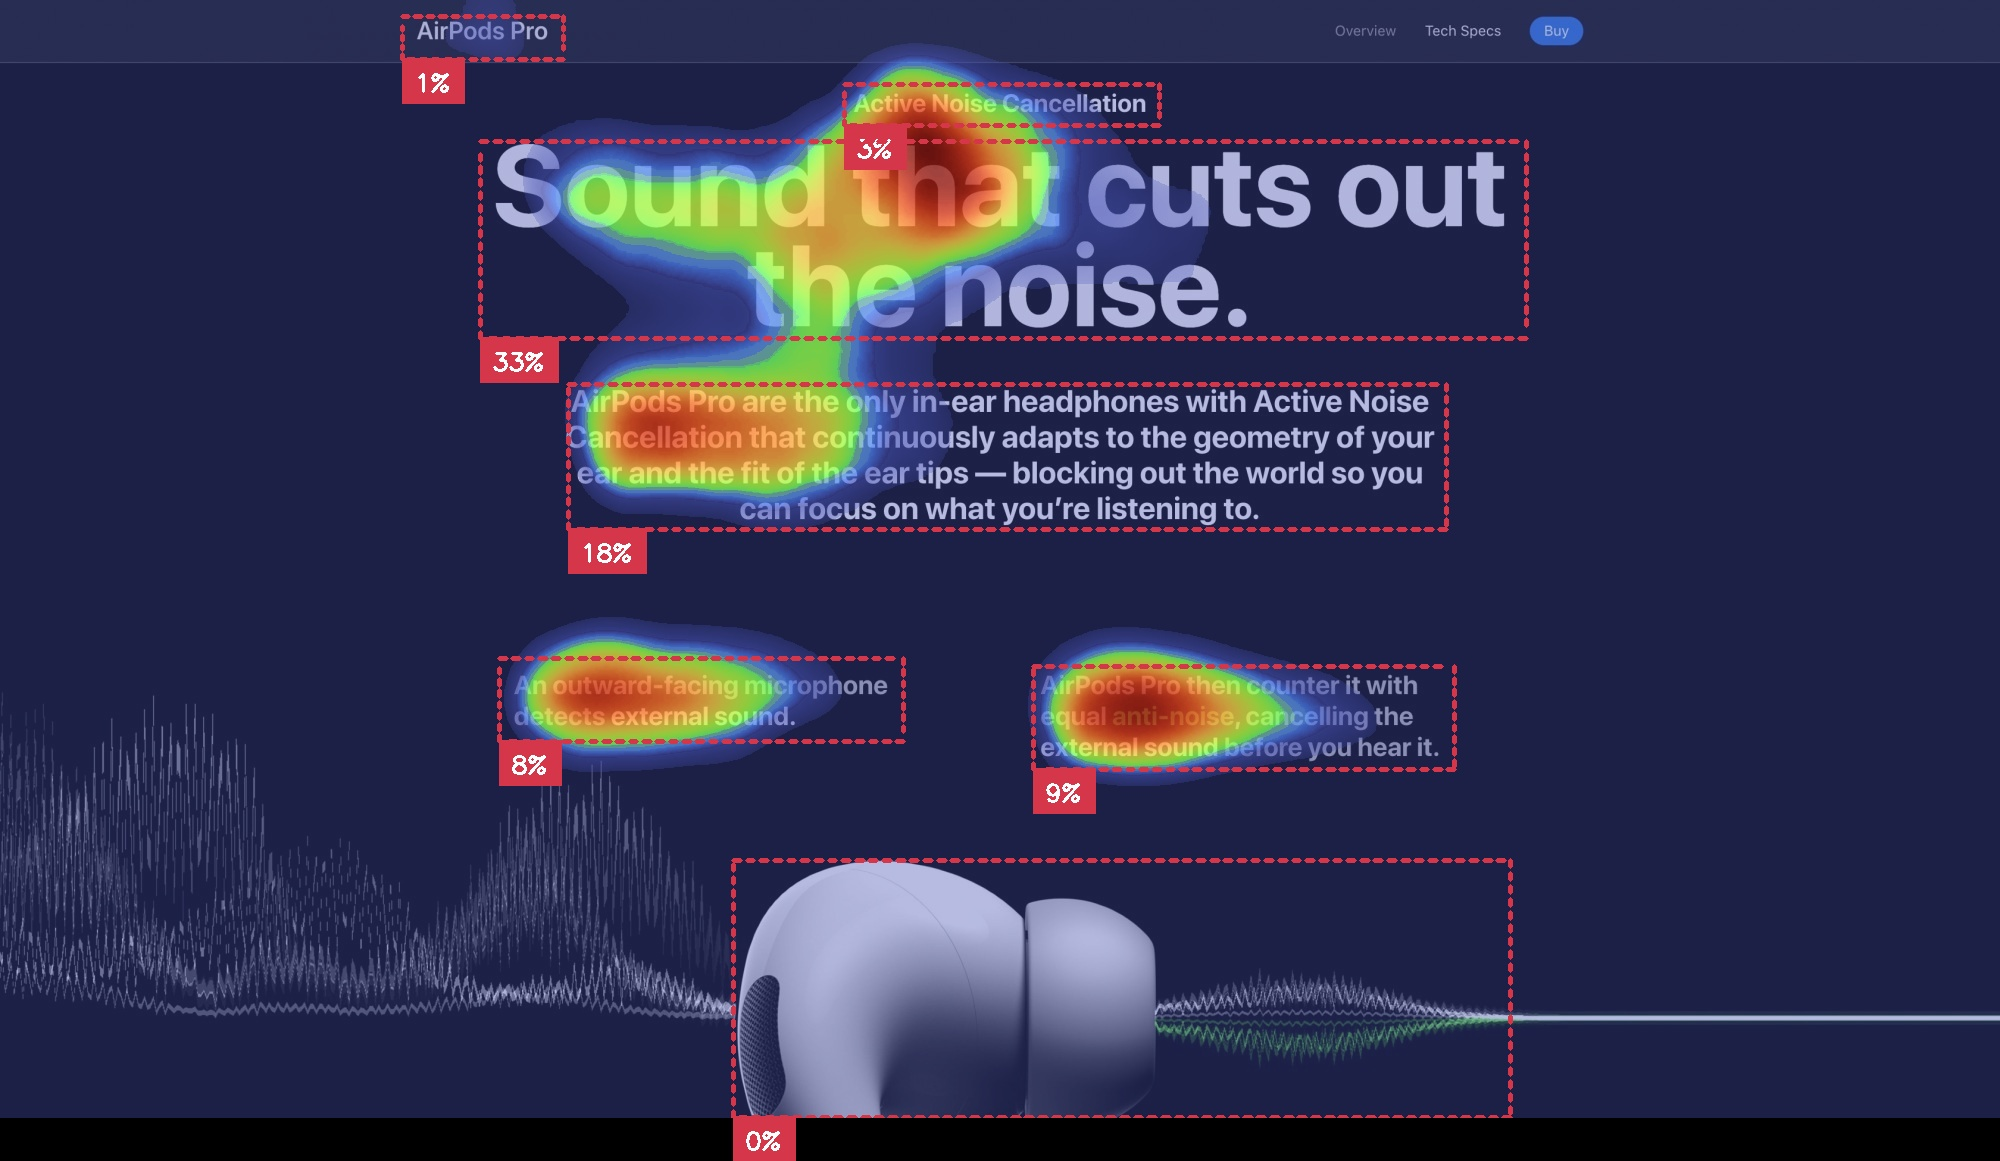 AI generated attention heatmap with AOIsof AirPods Pro website